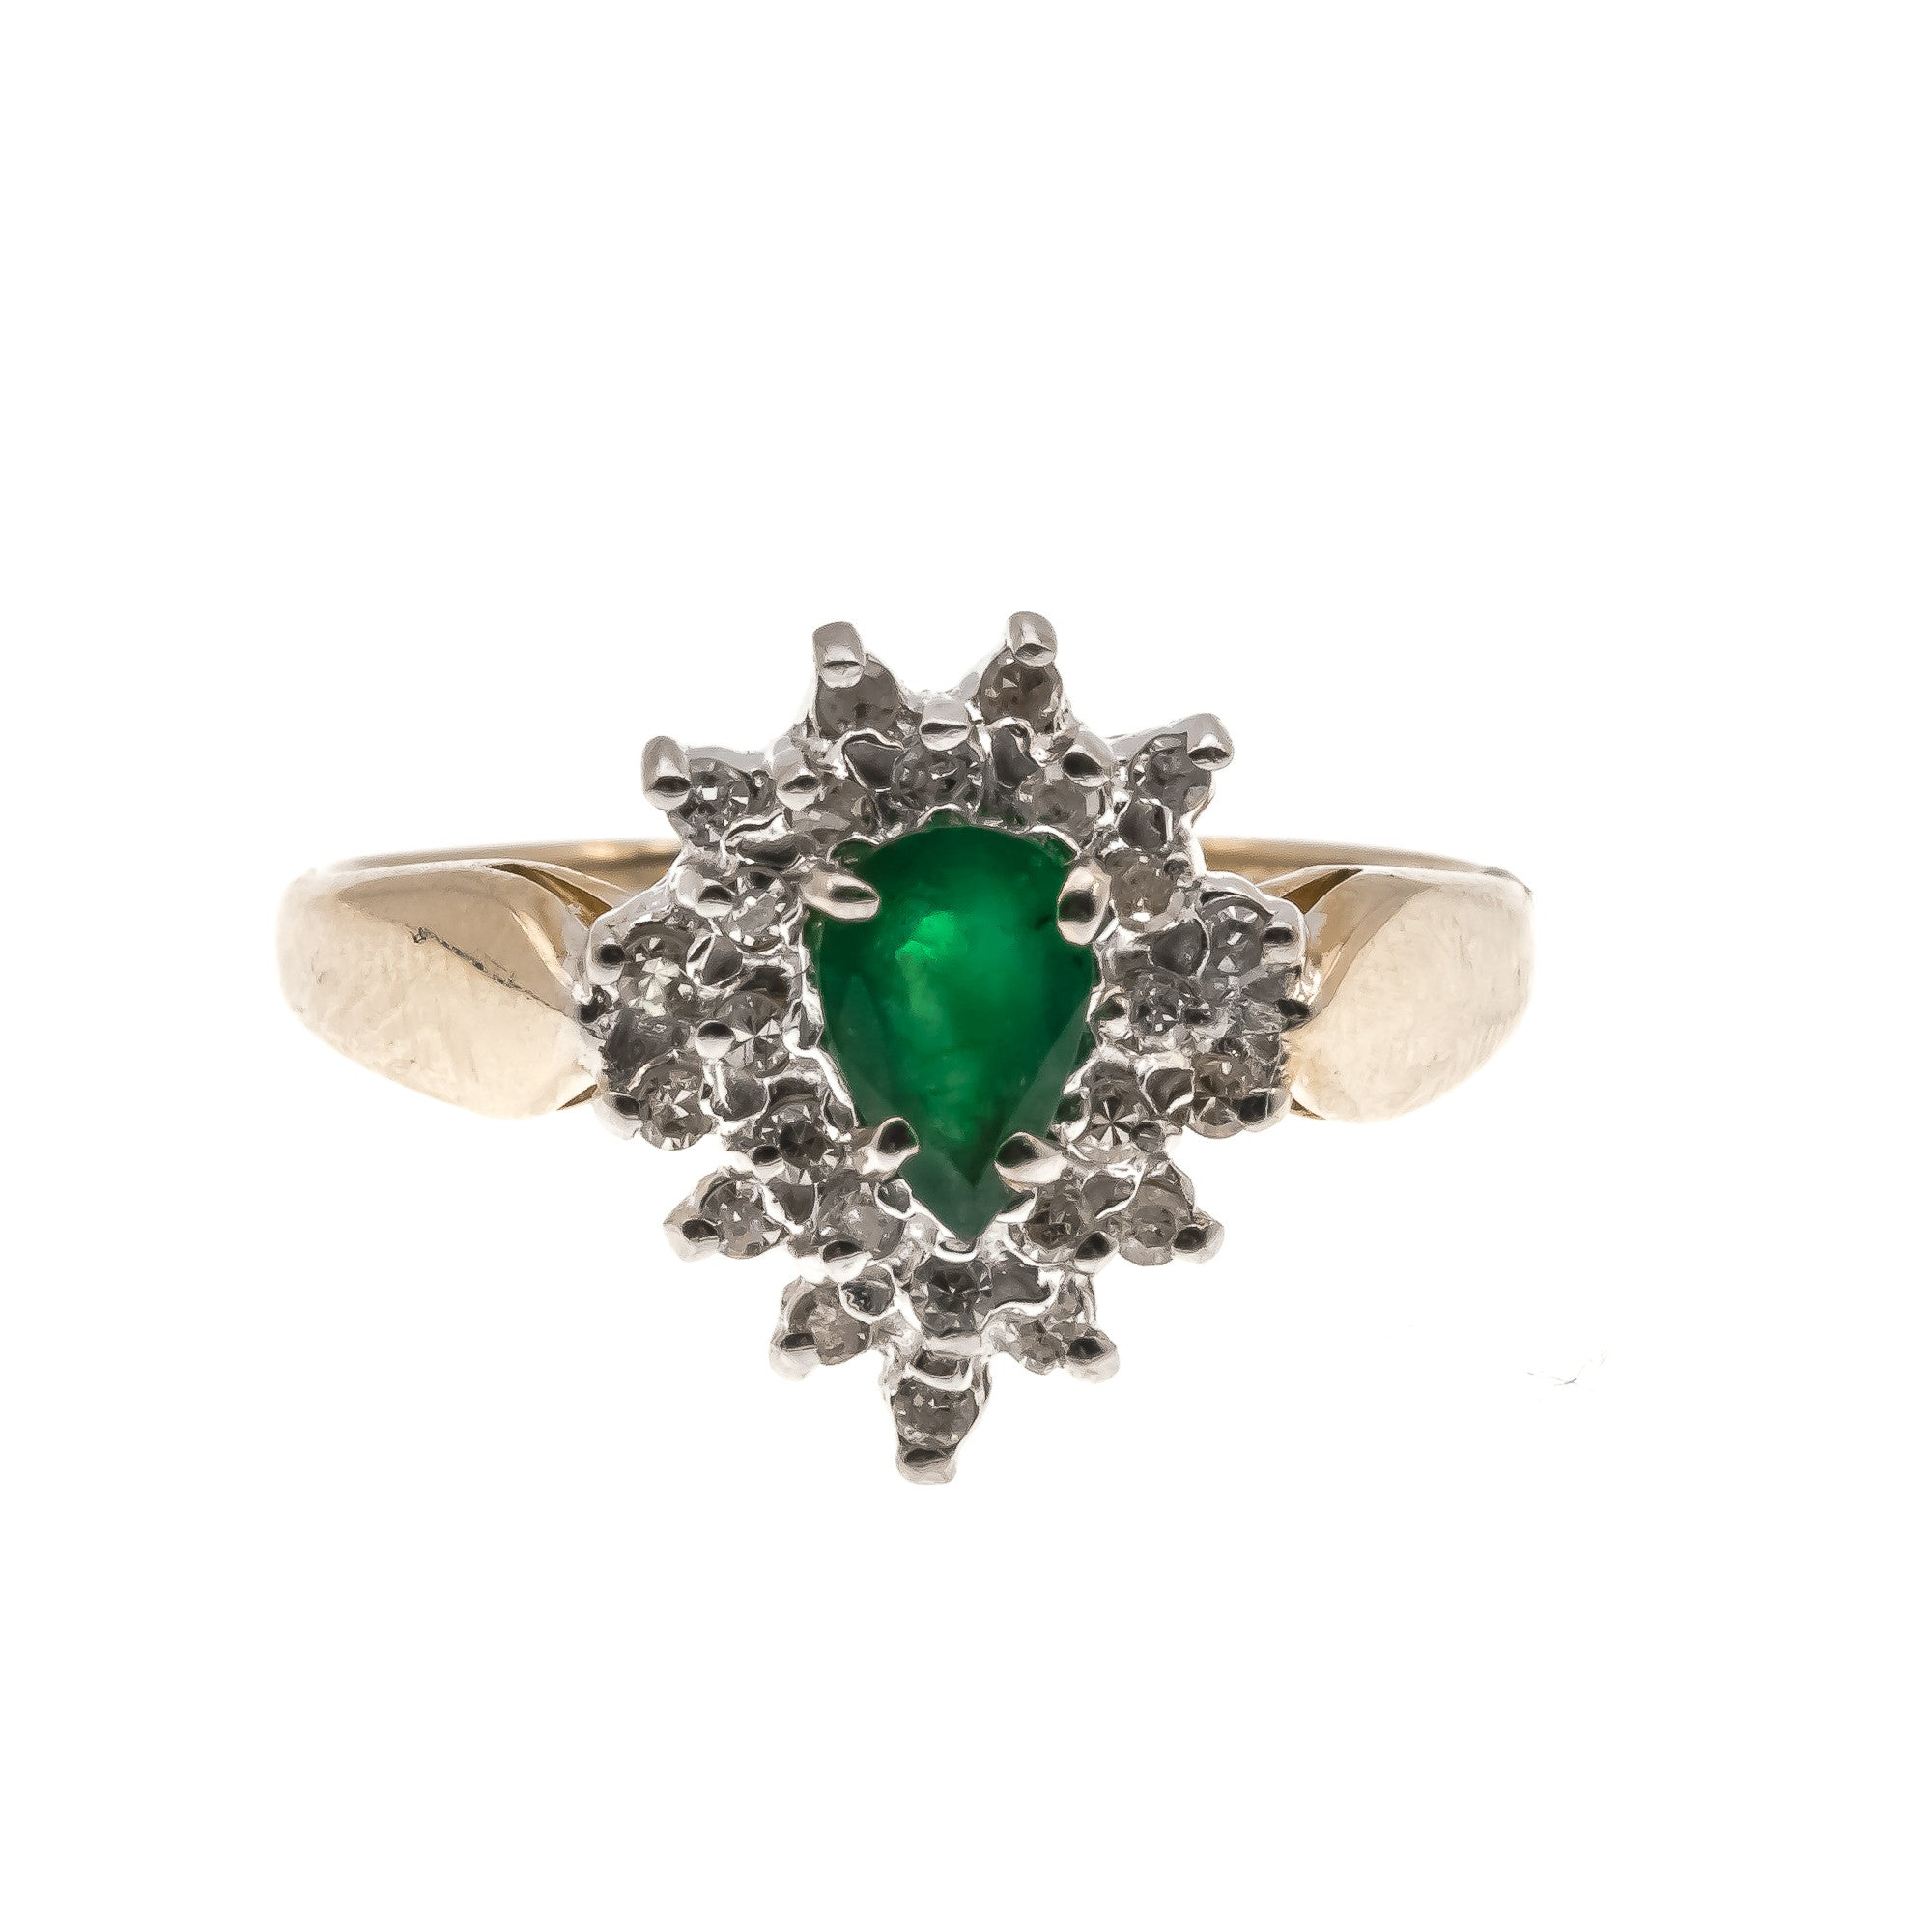 Emerald Nights - Vintage 10k Emerald & Diamond Ring